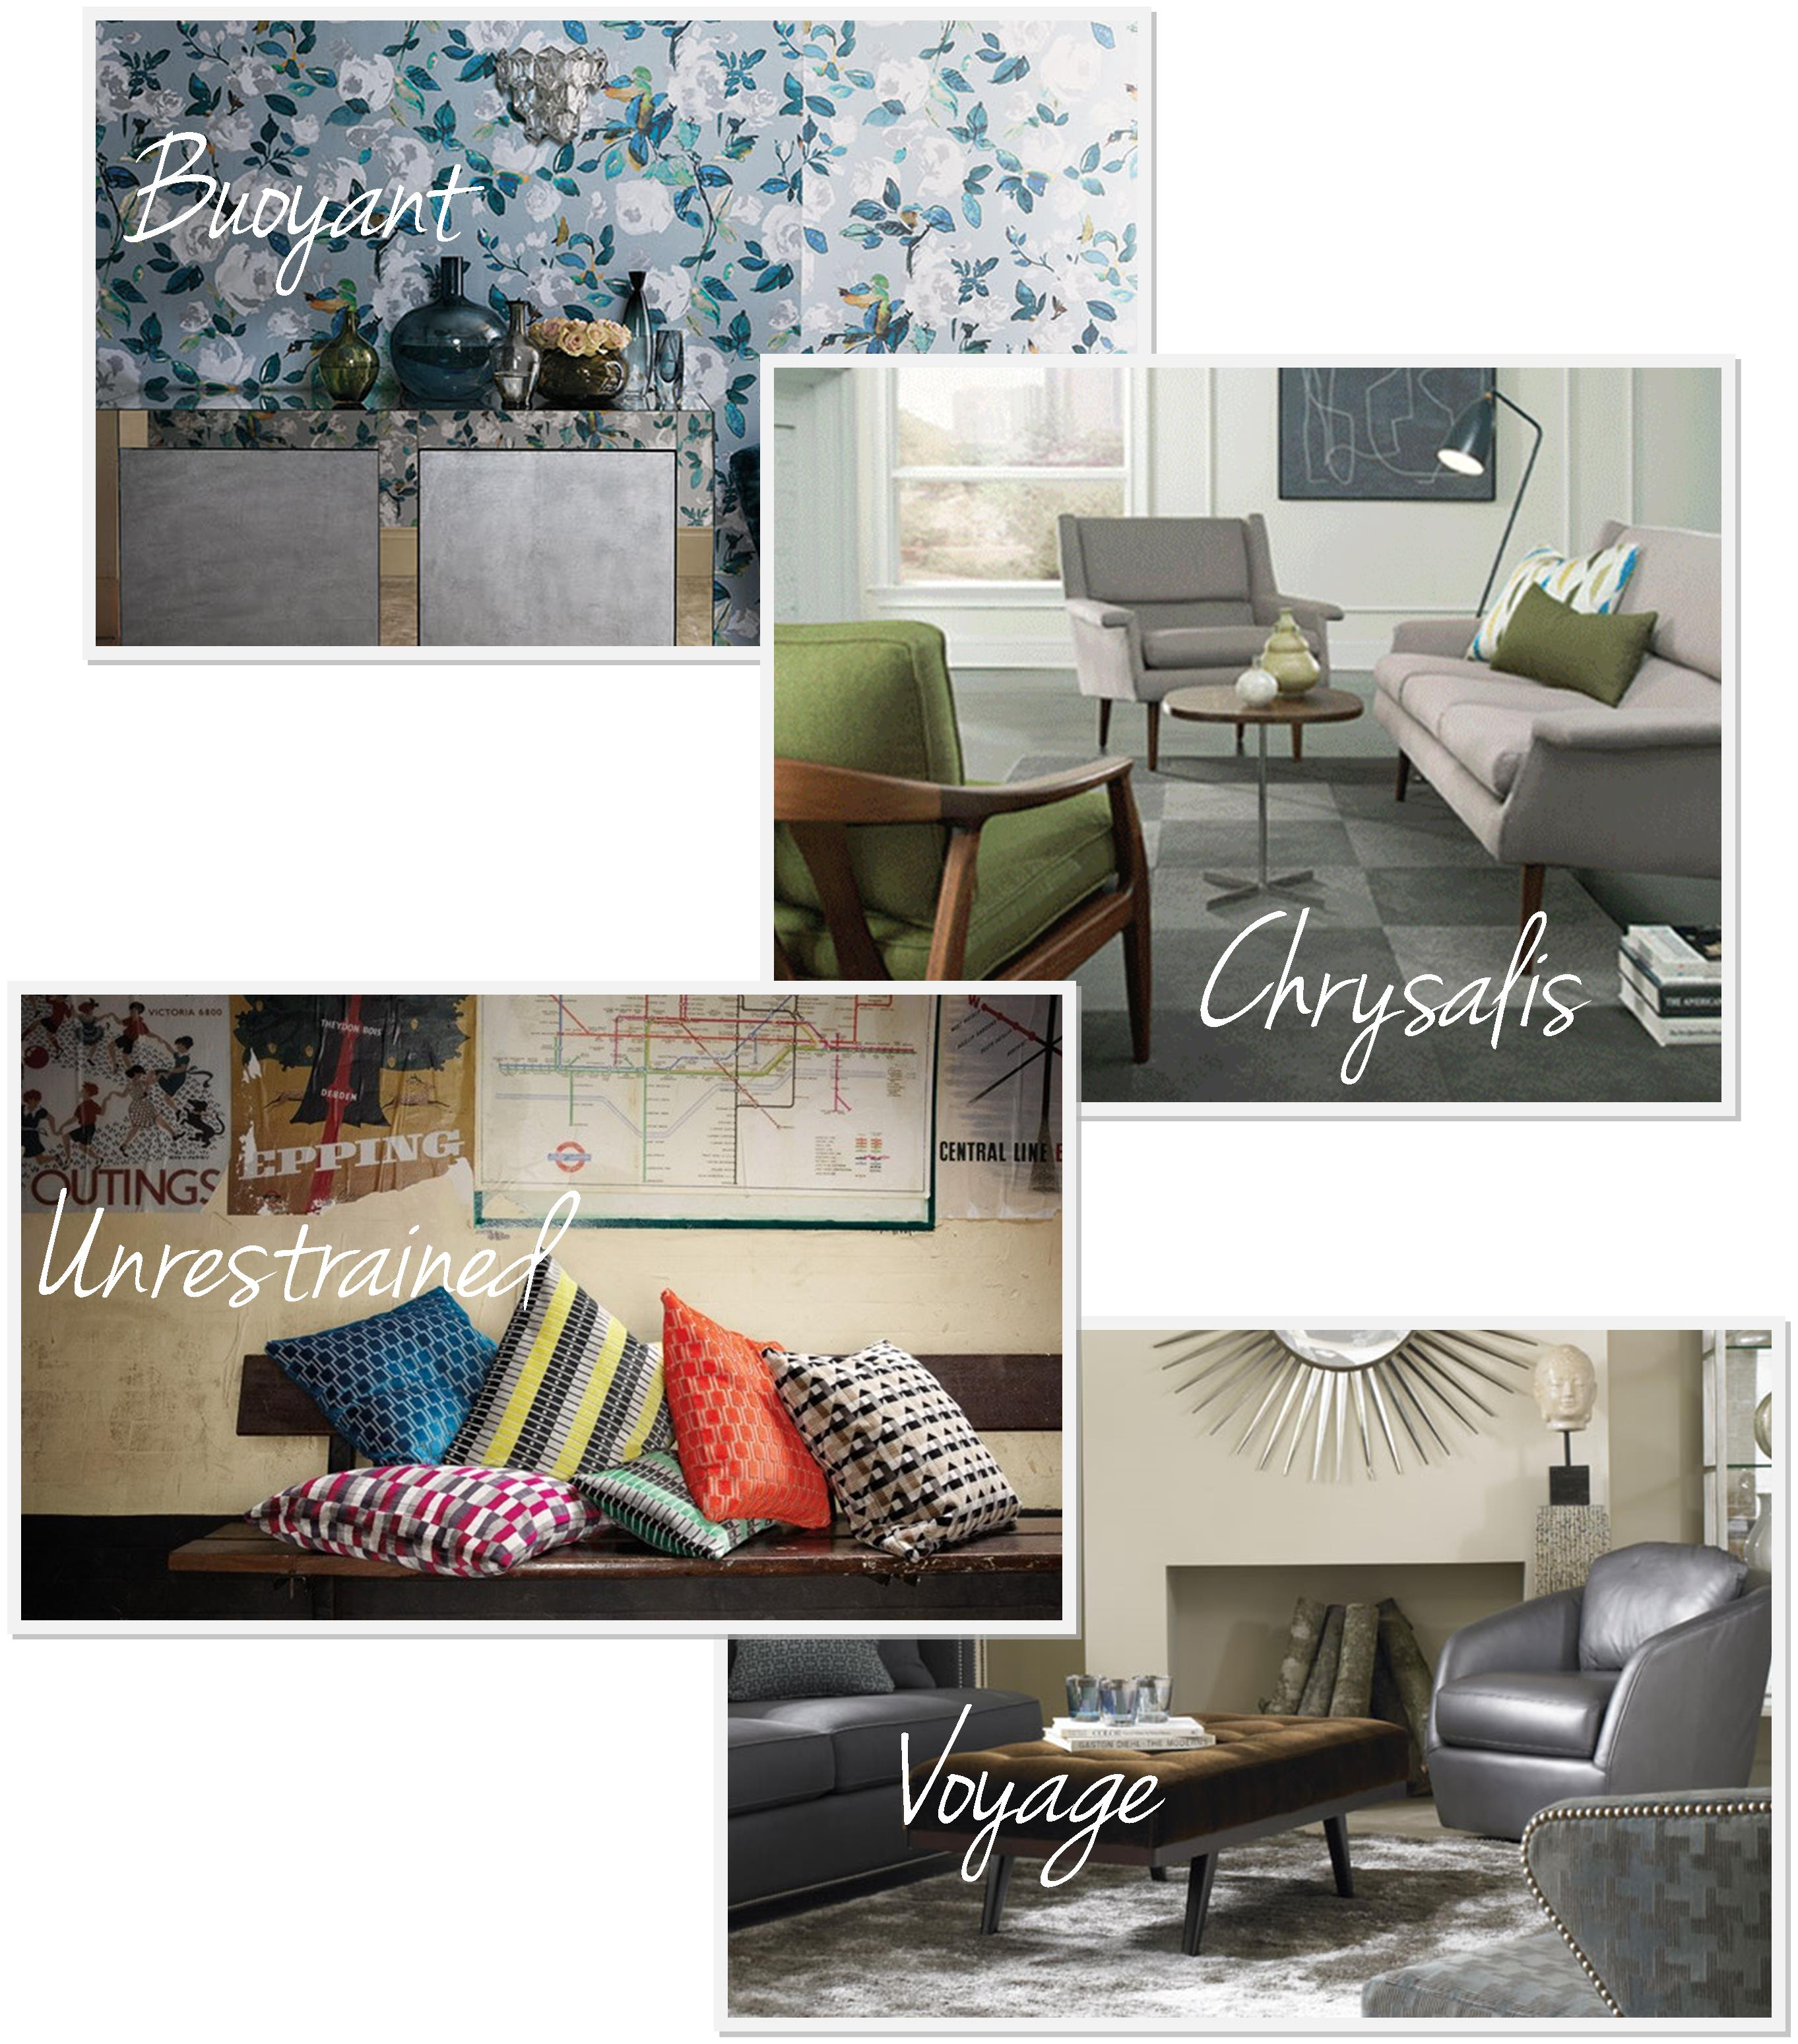 Sherwin Williams Color Forecast 2017 Buoyant Chrysalis Unrestrained And Voyage